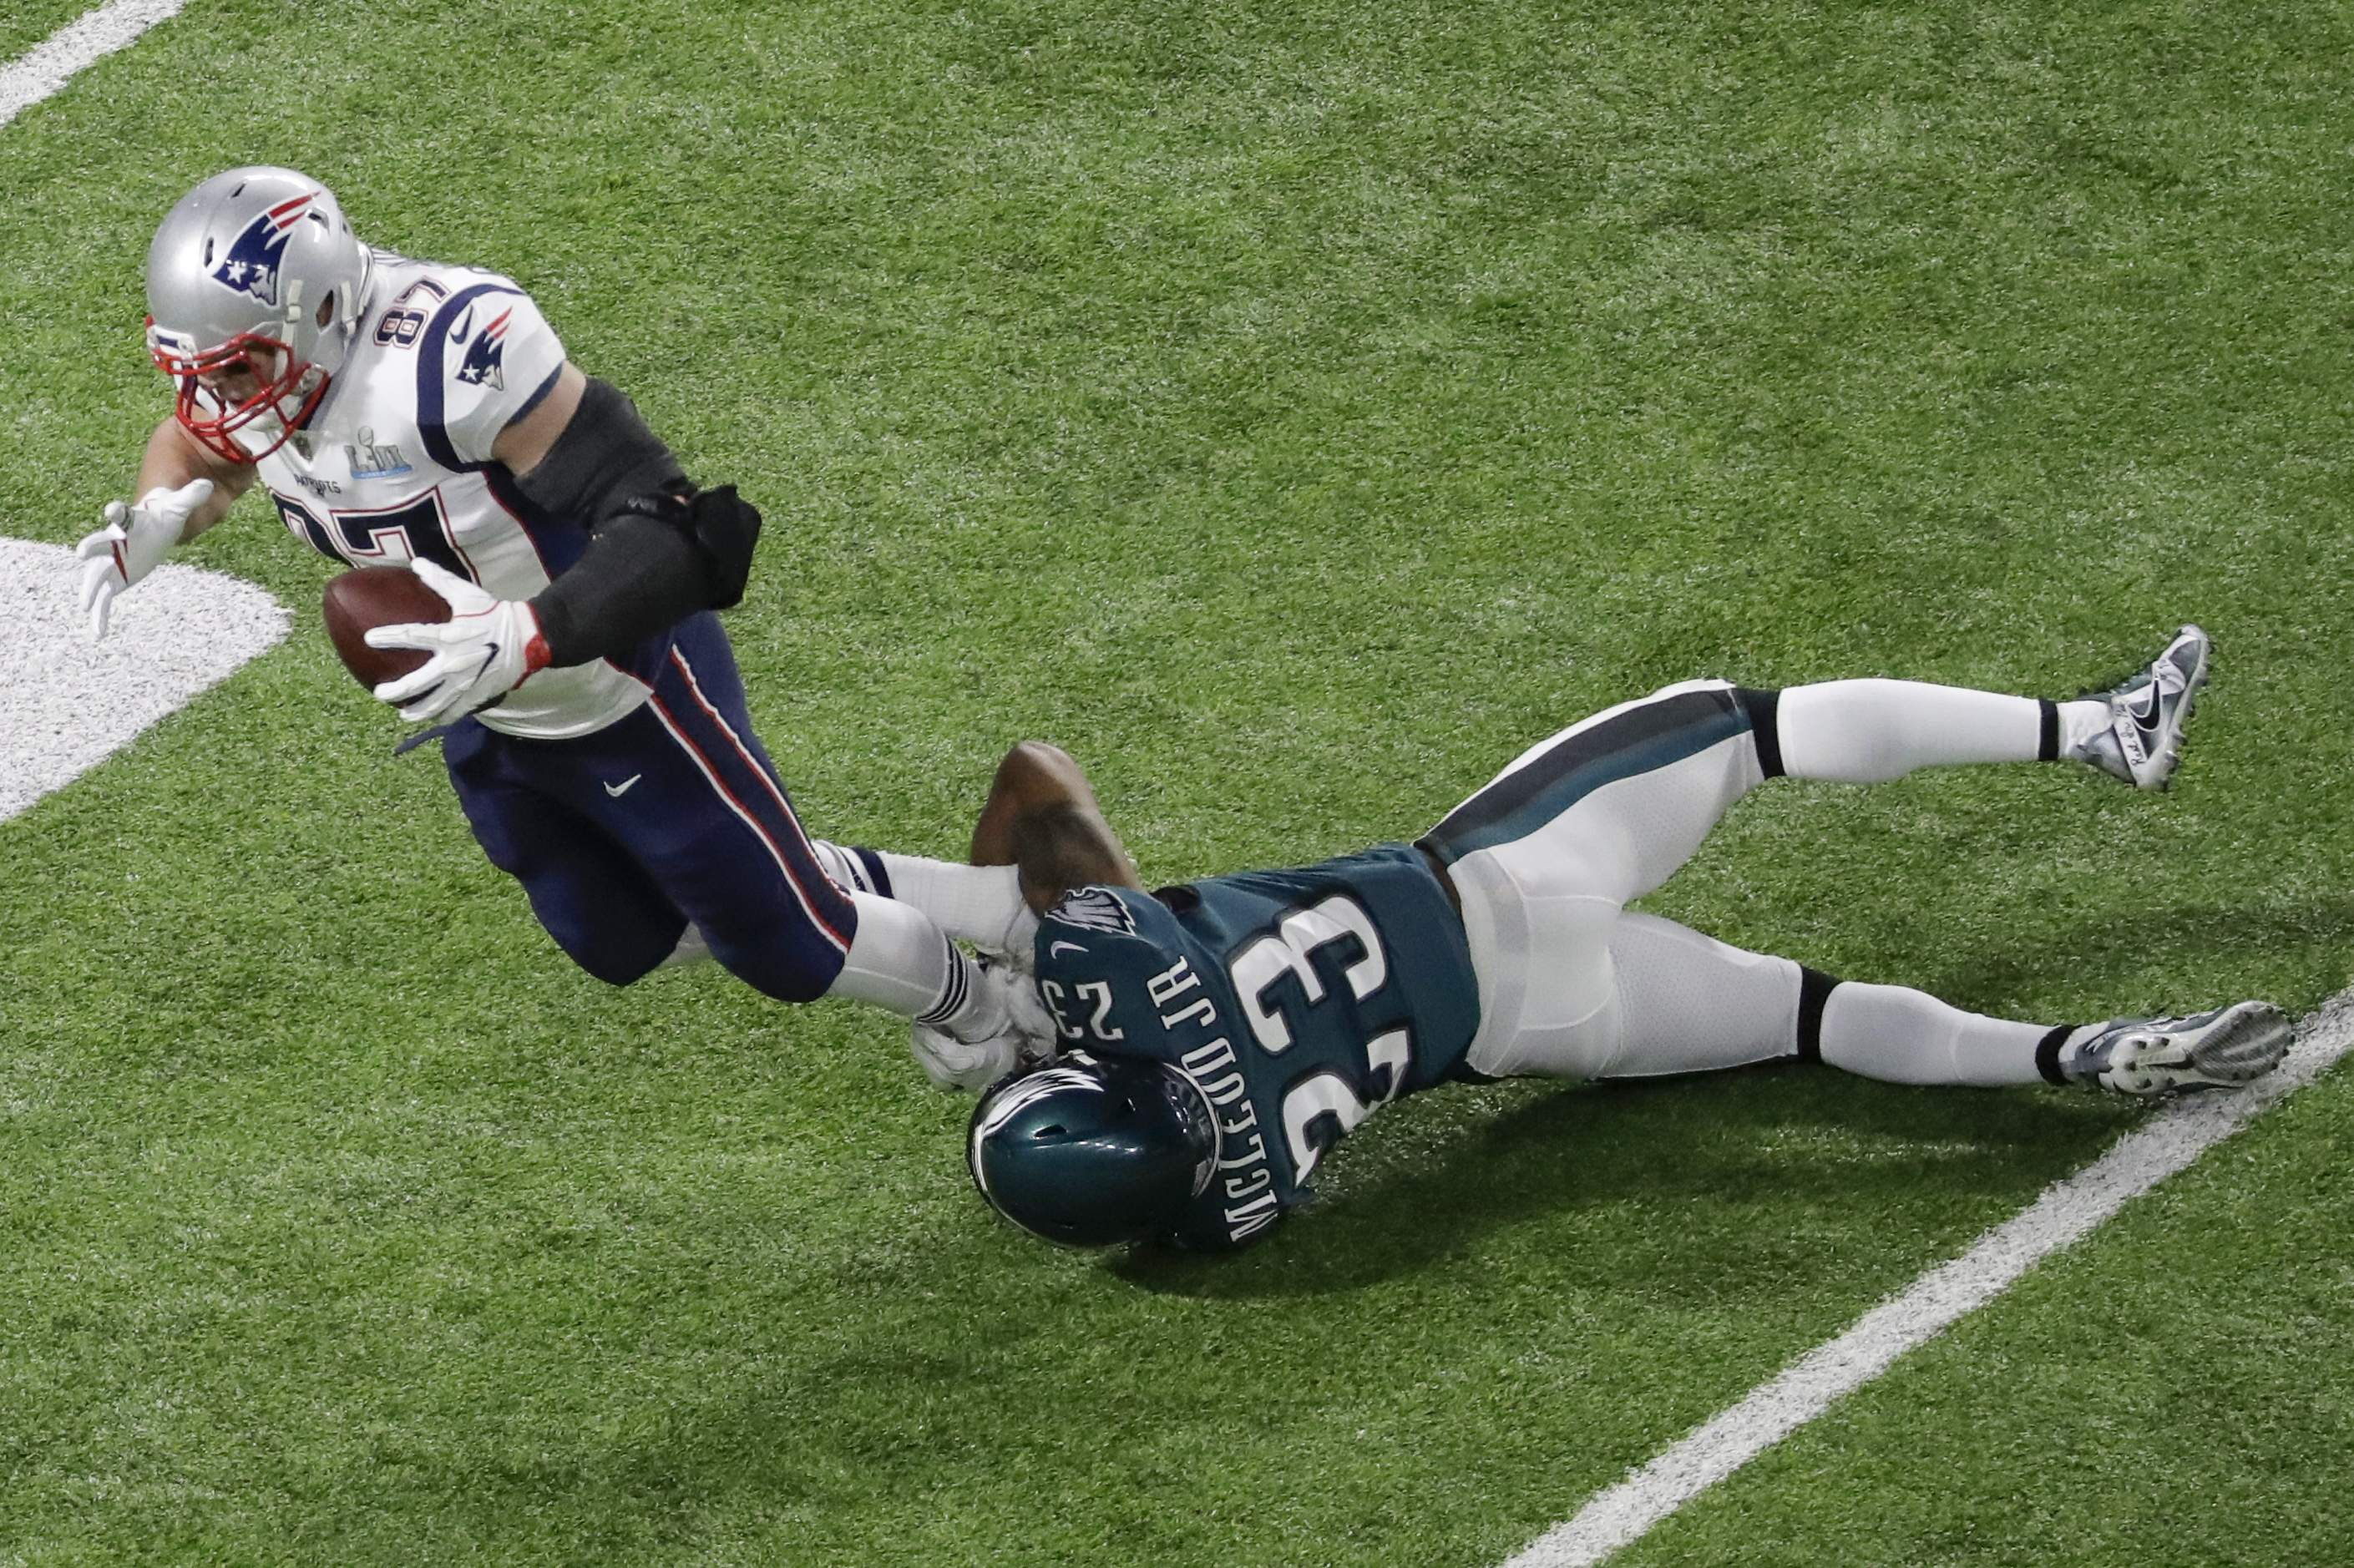 New England Patriots tight end Rob Gronkowski (87) is tackled by Philadelphia Eagles free safety Rodney McLeod Jr. during the first half of the NFL Super Bowl 52 football game Sunday, Feb. 4, 2018, in Minneapolis. (AP Photo/Eric Gay)